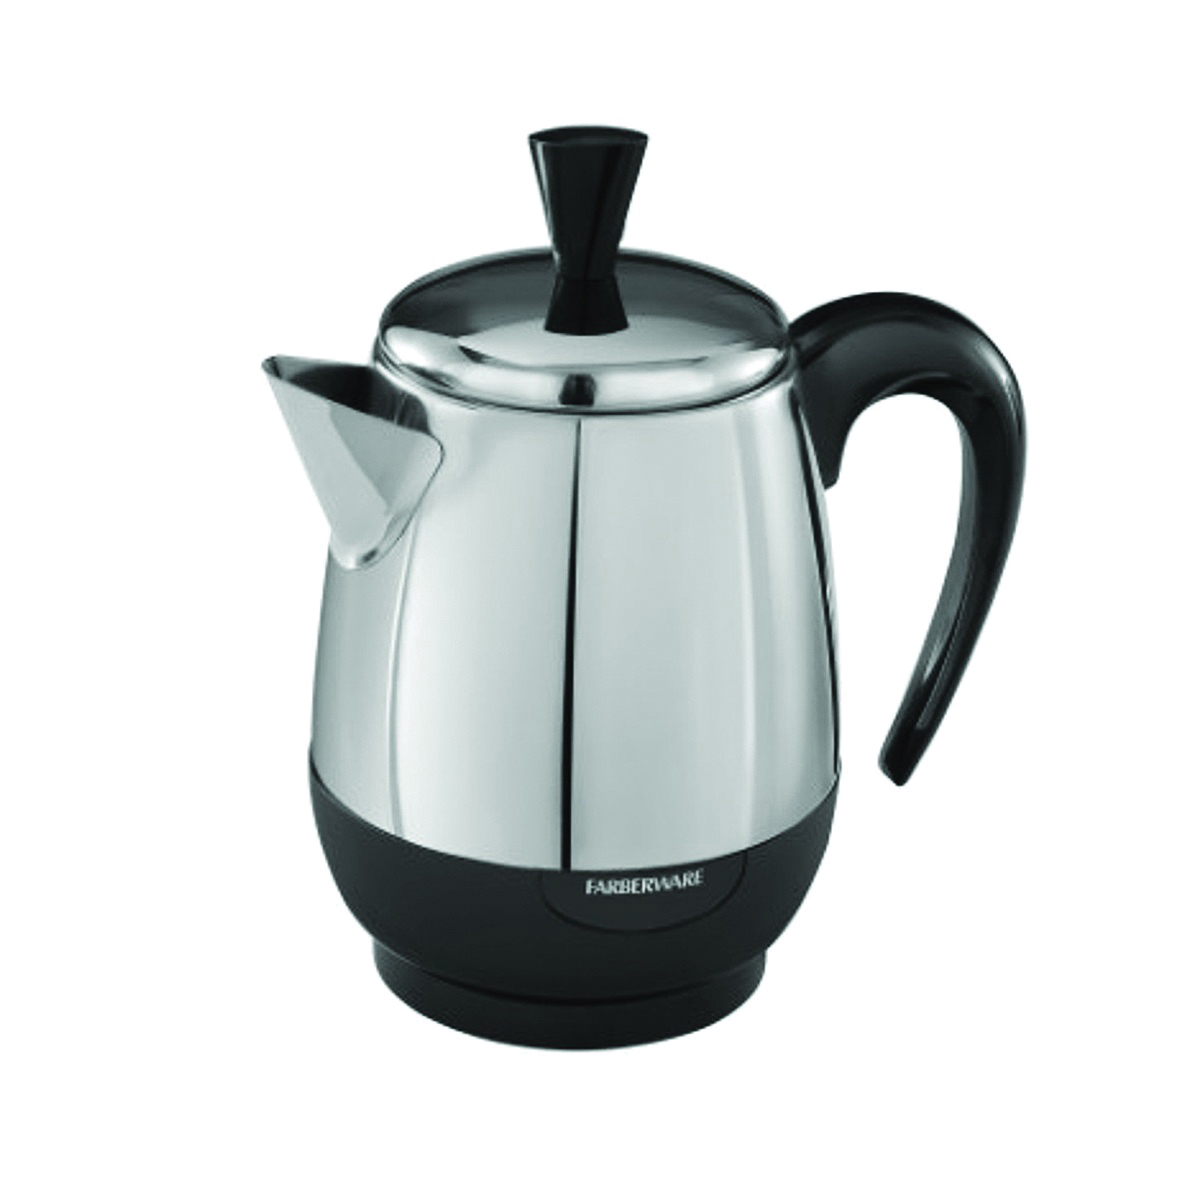 Picture of FARBERWARE FCP240 Electric Percolator, 2 to 4 Cups Capacity, 1 W, Stainless Steel, Knob Control